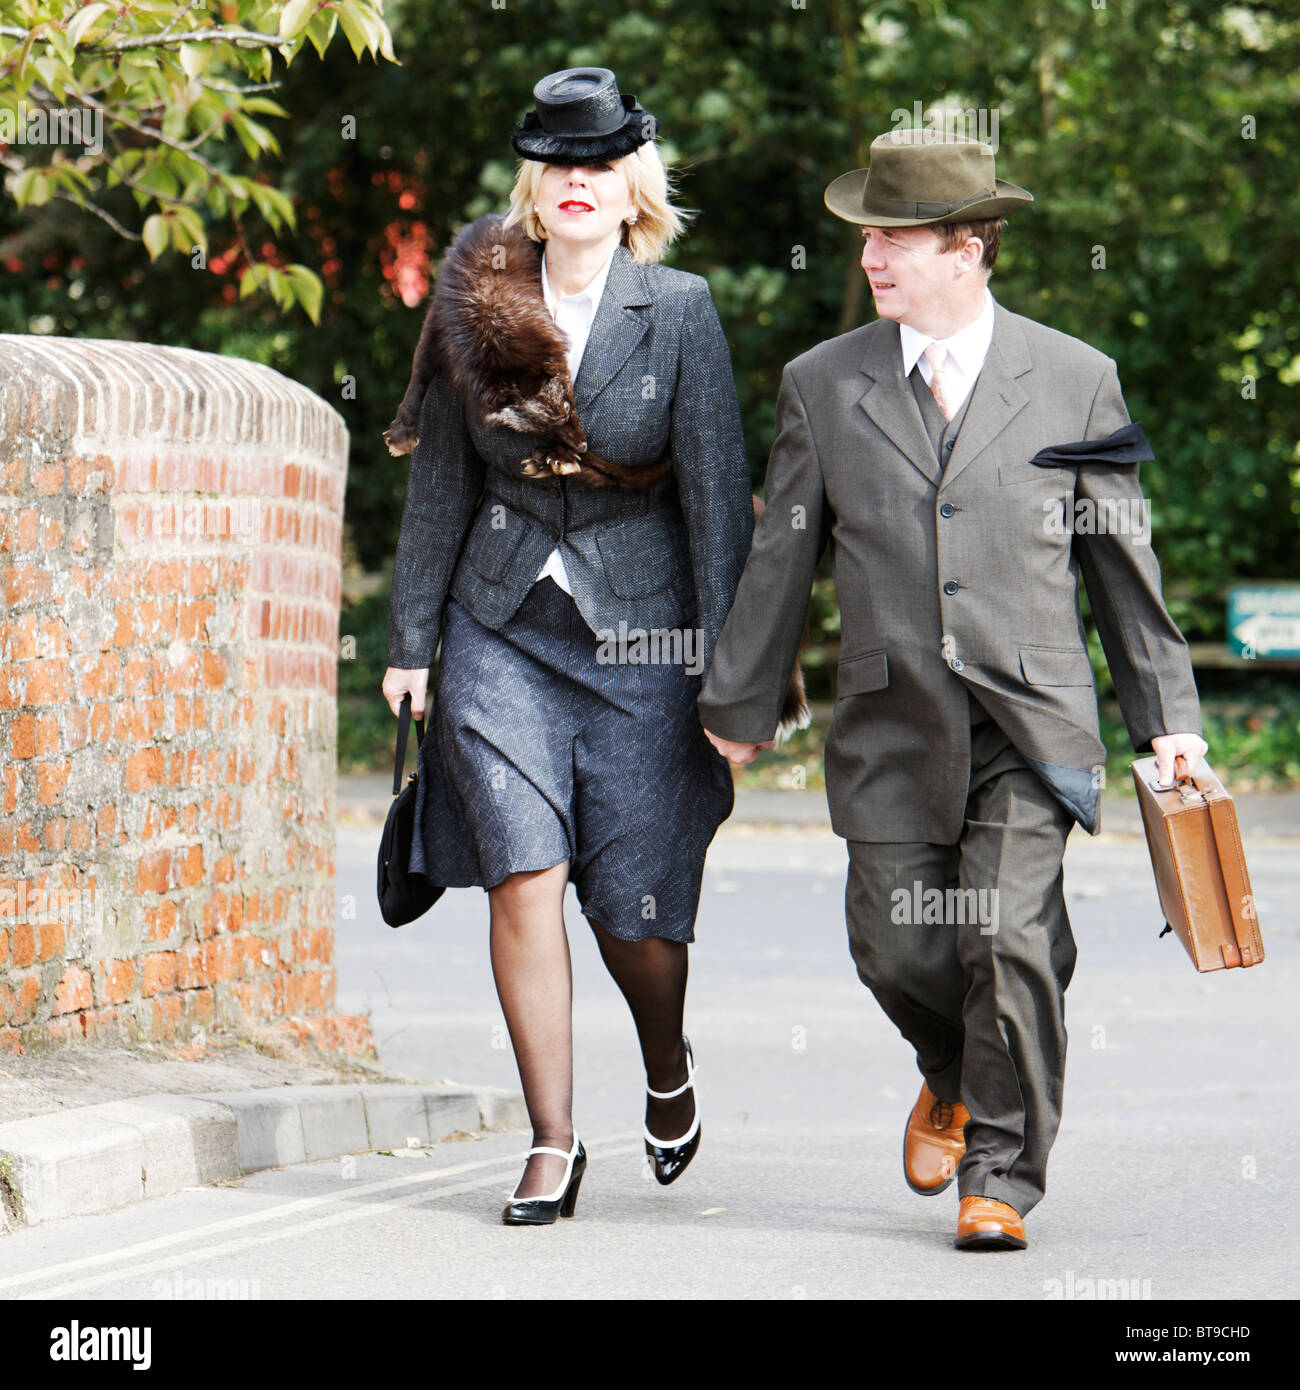 facf73f0333 Windy Day for 1940s Woman in Fur Stoal   Husband in Fedora - Stock Image